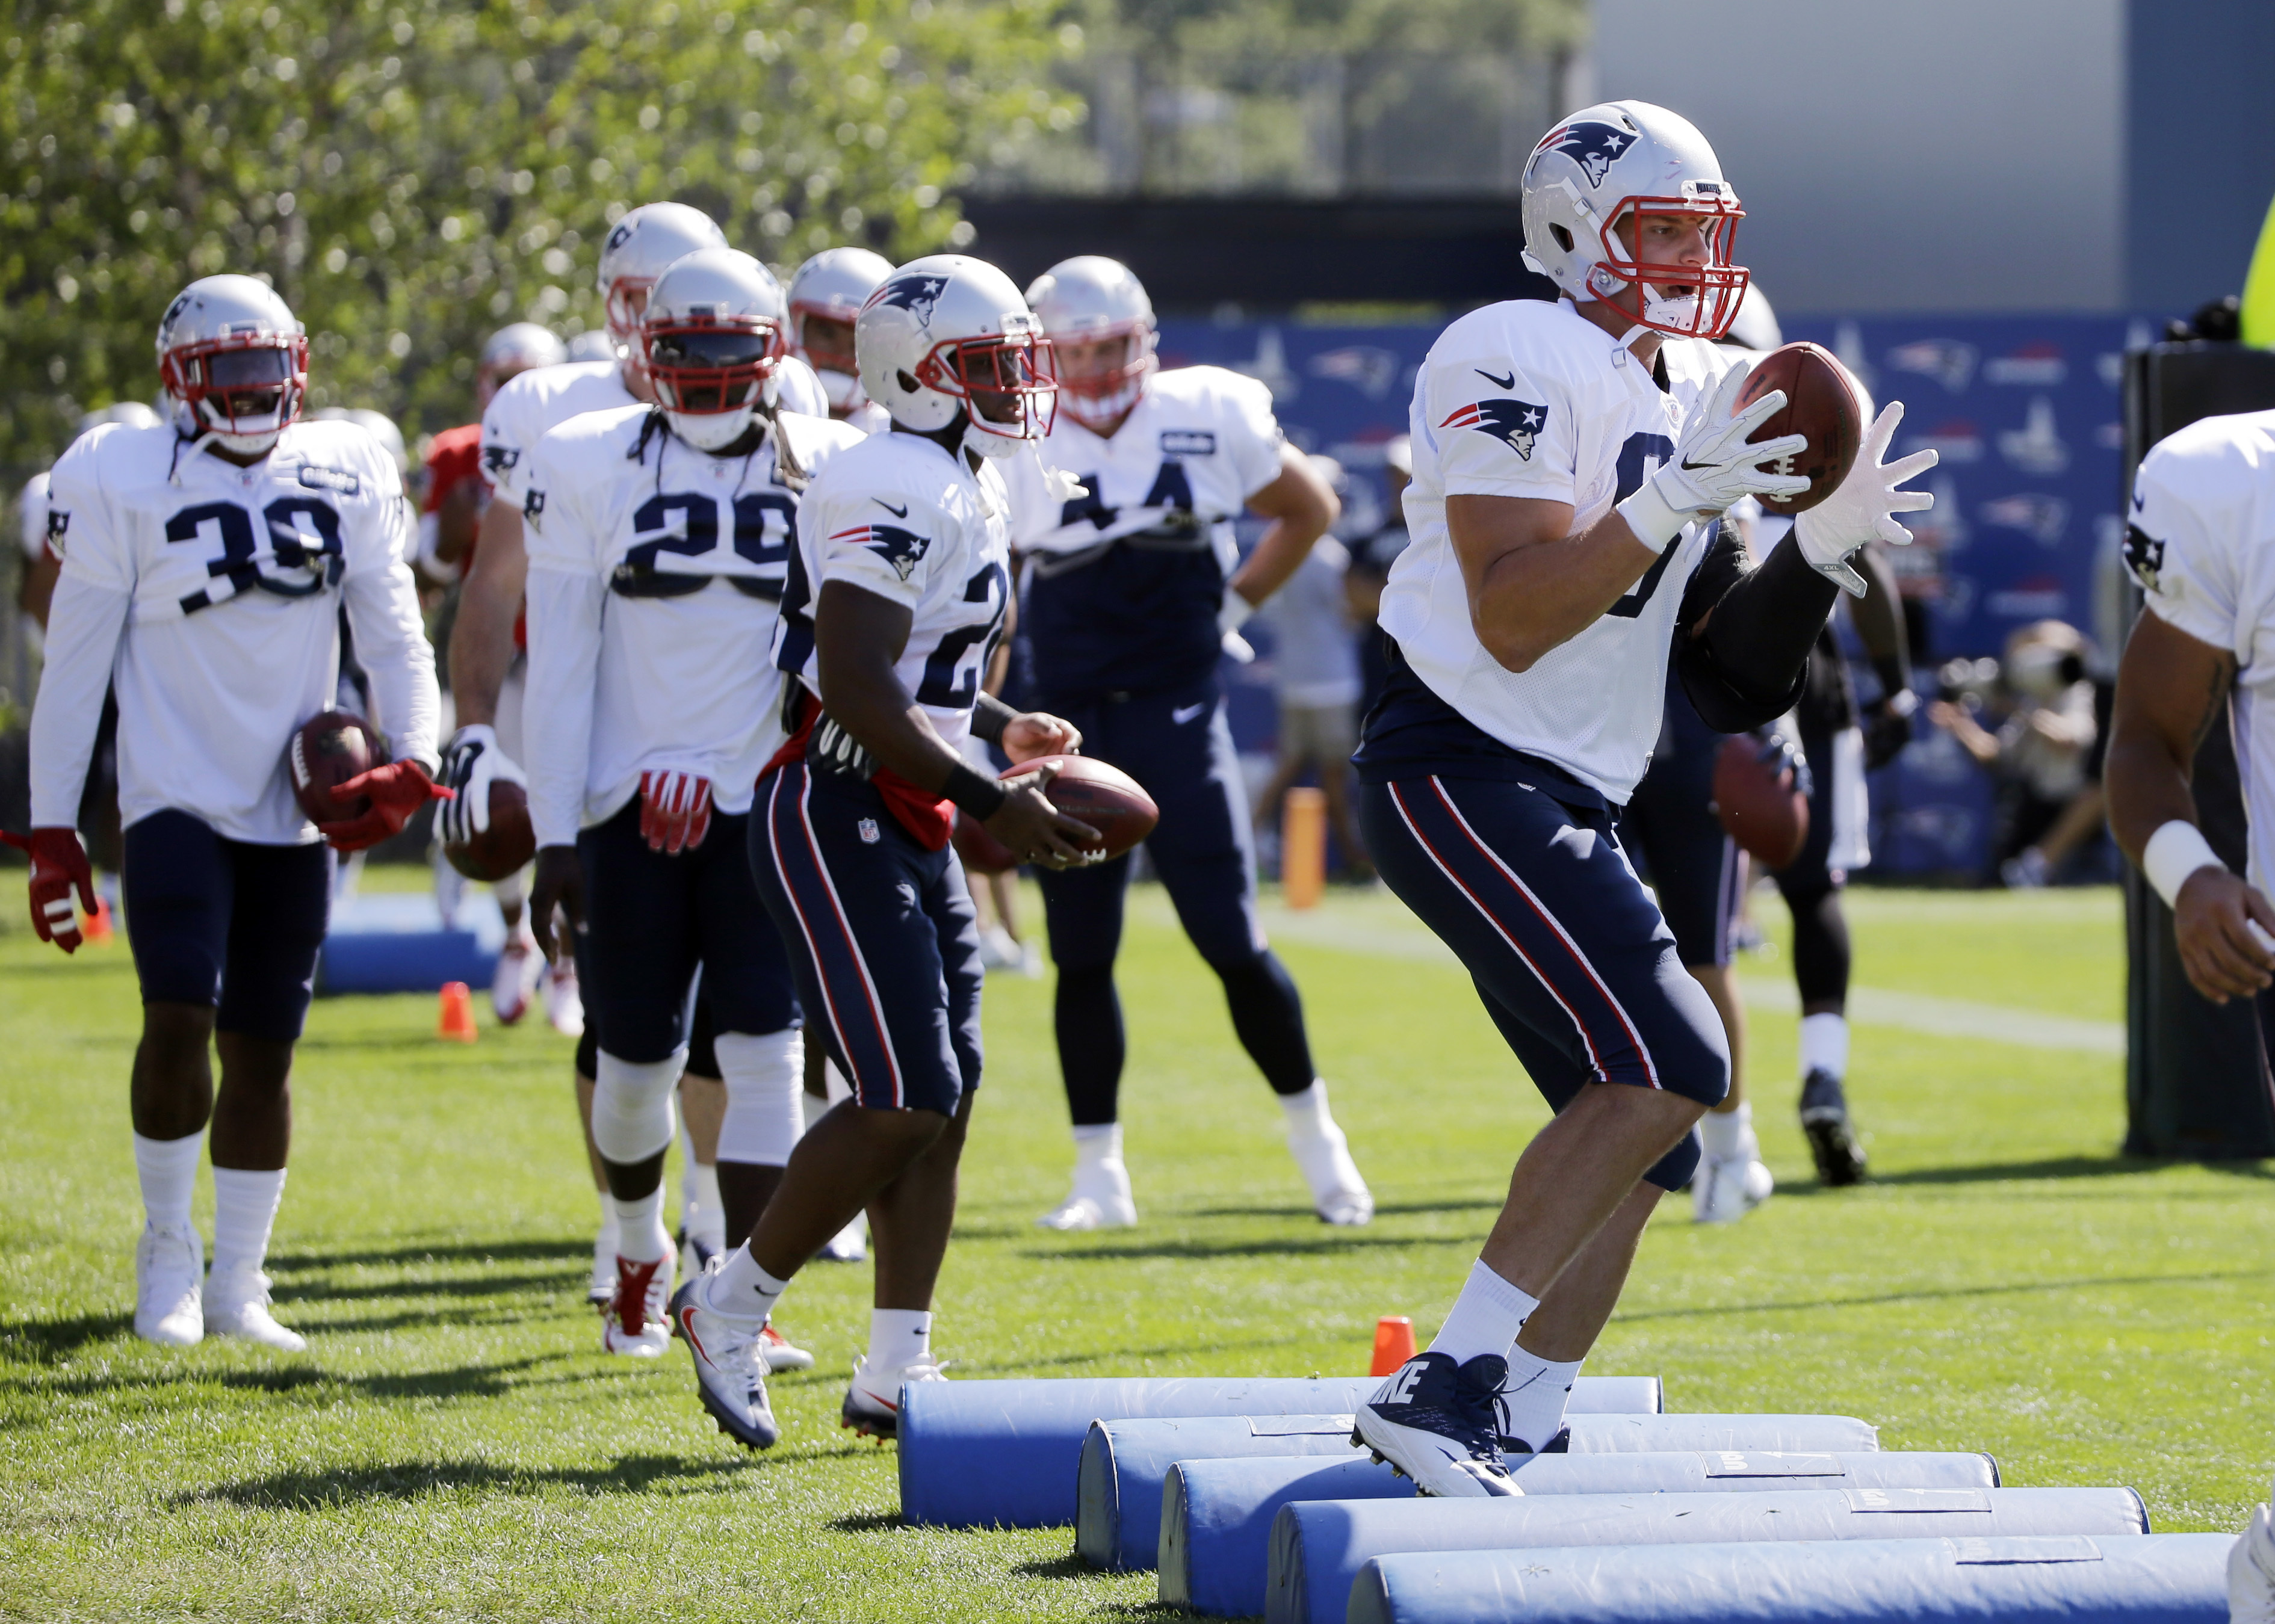 New England Patriots tight end Rob Gronkowski, right, performs a drill during football training camp, Tuesday, Aug. 9, 2016, in Foxborough, Mass. (AP Photo/Elise Amendola)